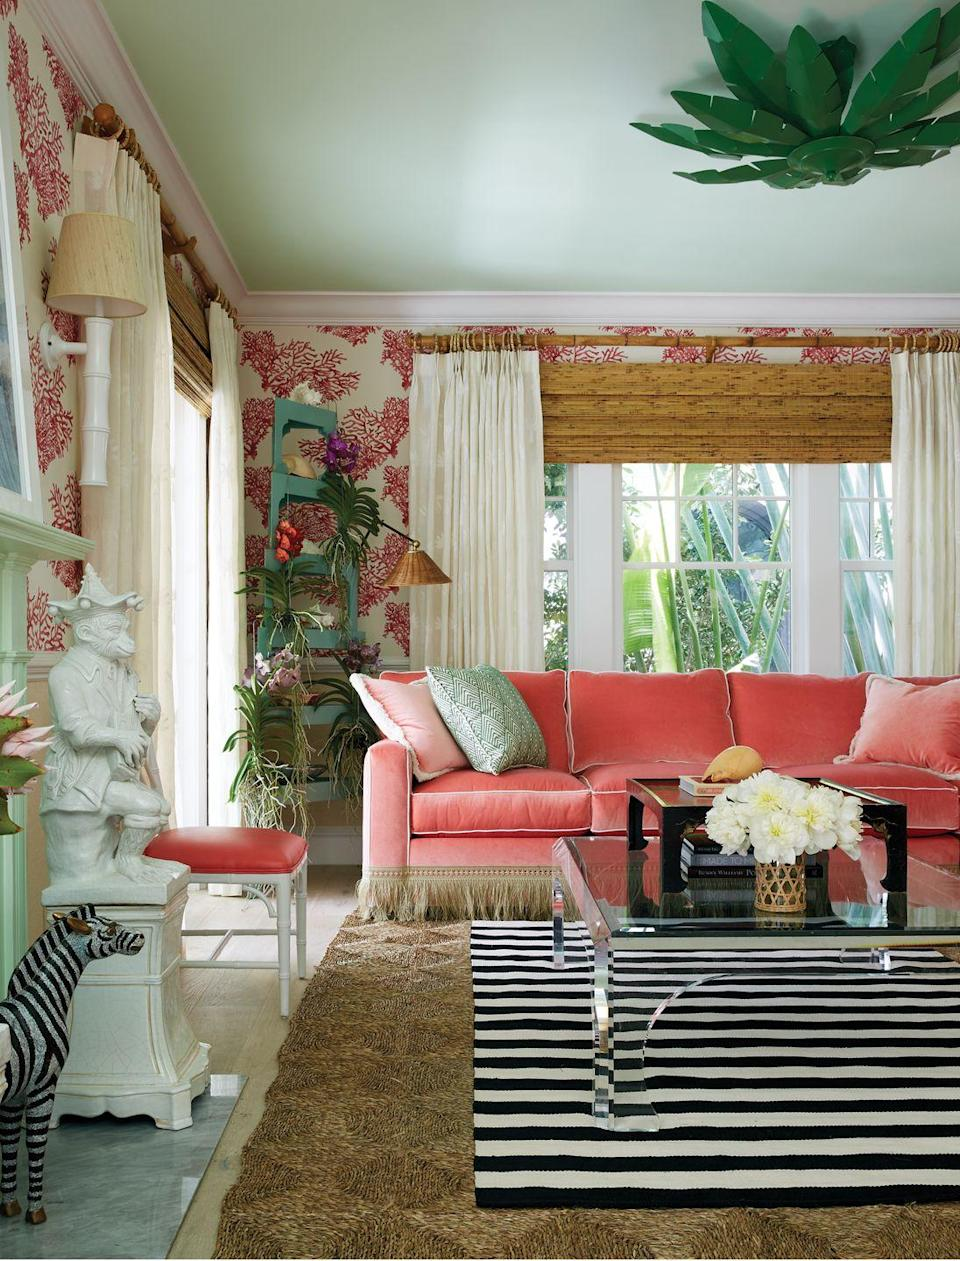 """<p>Defined by its extroverted yet cultivated qualities, preppy rooms are """"steadfast arenas for the tumble of life,"""" according to Caponigro. Those drawn to the upbeat mode will most certainly love juicy pink and coral tones like those featured on the velvet sofa (Sophia Velvet) and playful wallcovering (Great Barrier Reef) in this Amanda Lindroth–designed living room. </p>"""